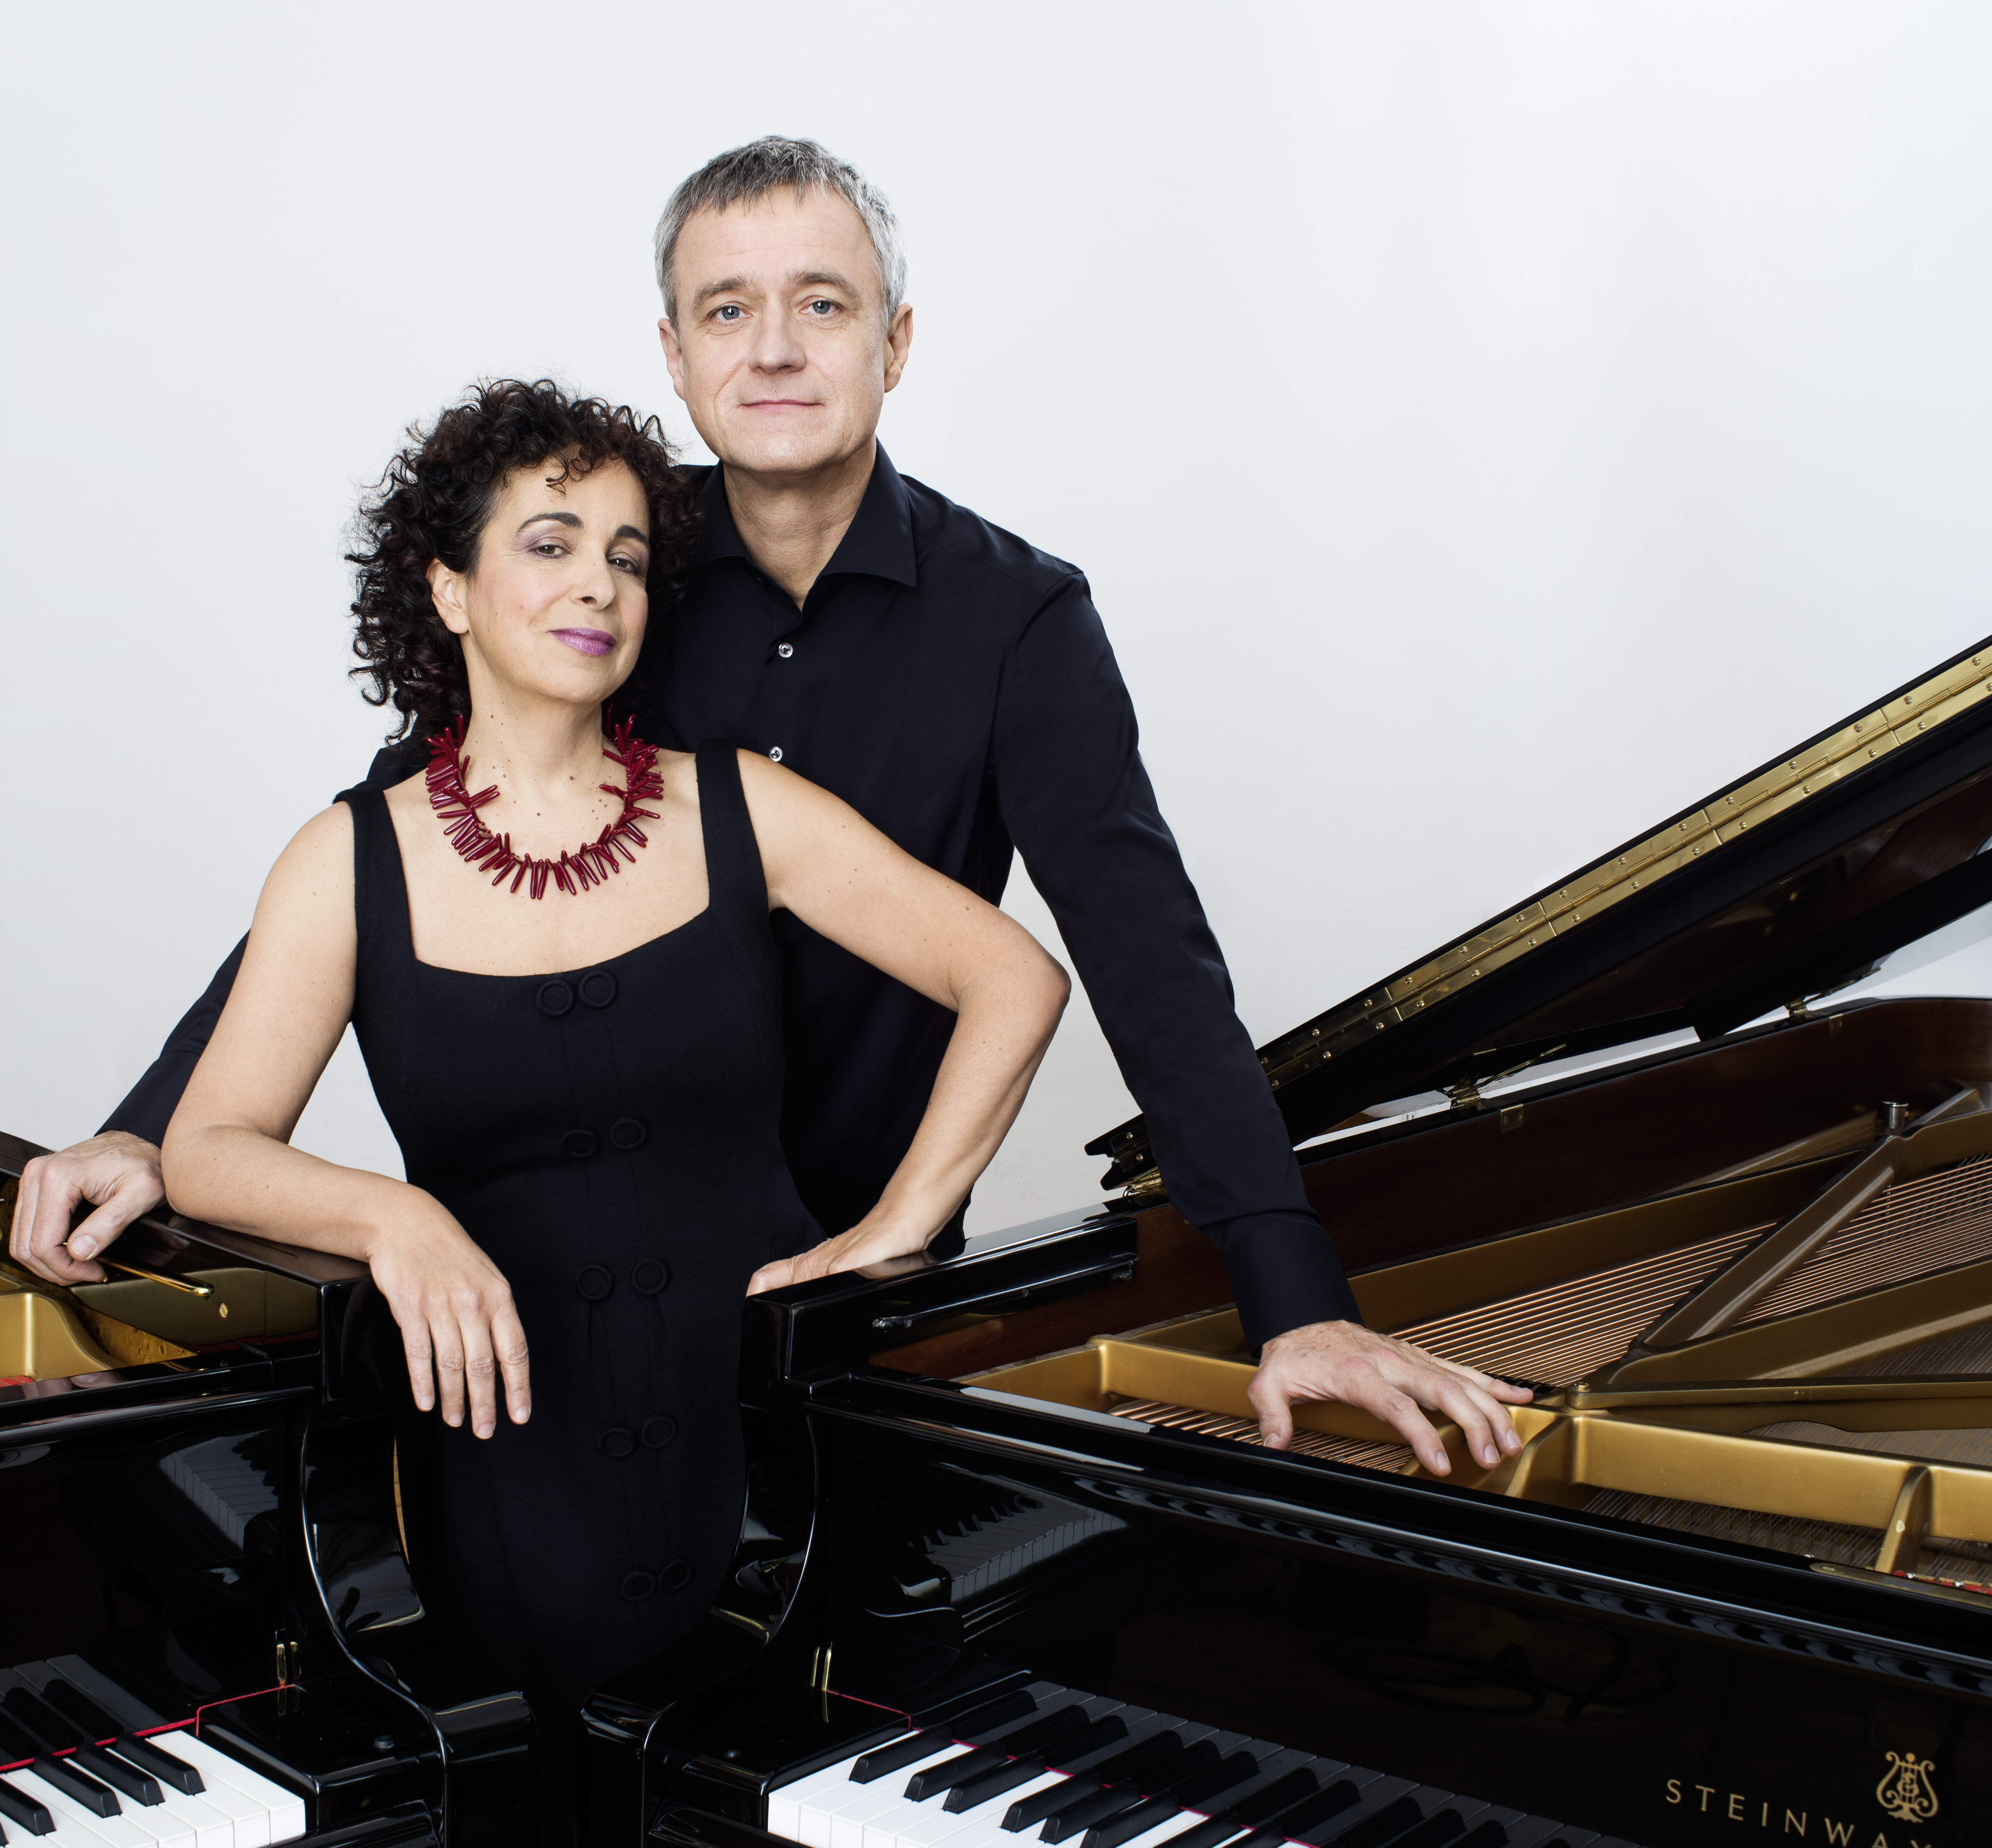 Duo Tal & Groethuysen standing between 2 pianos